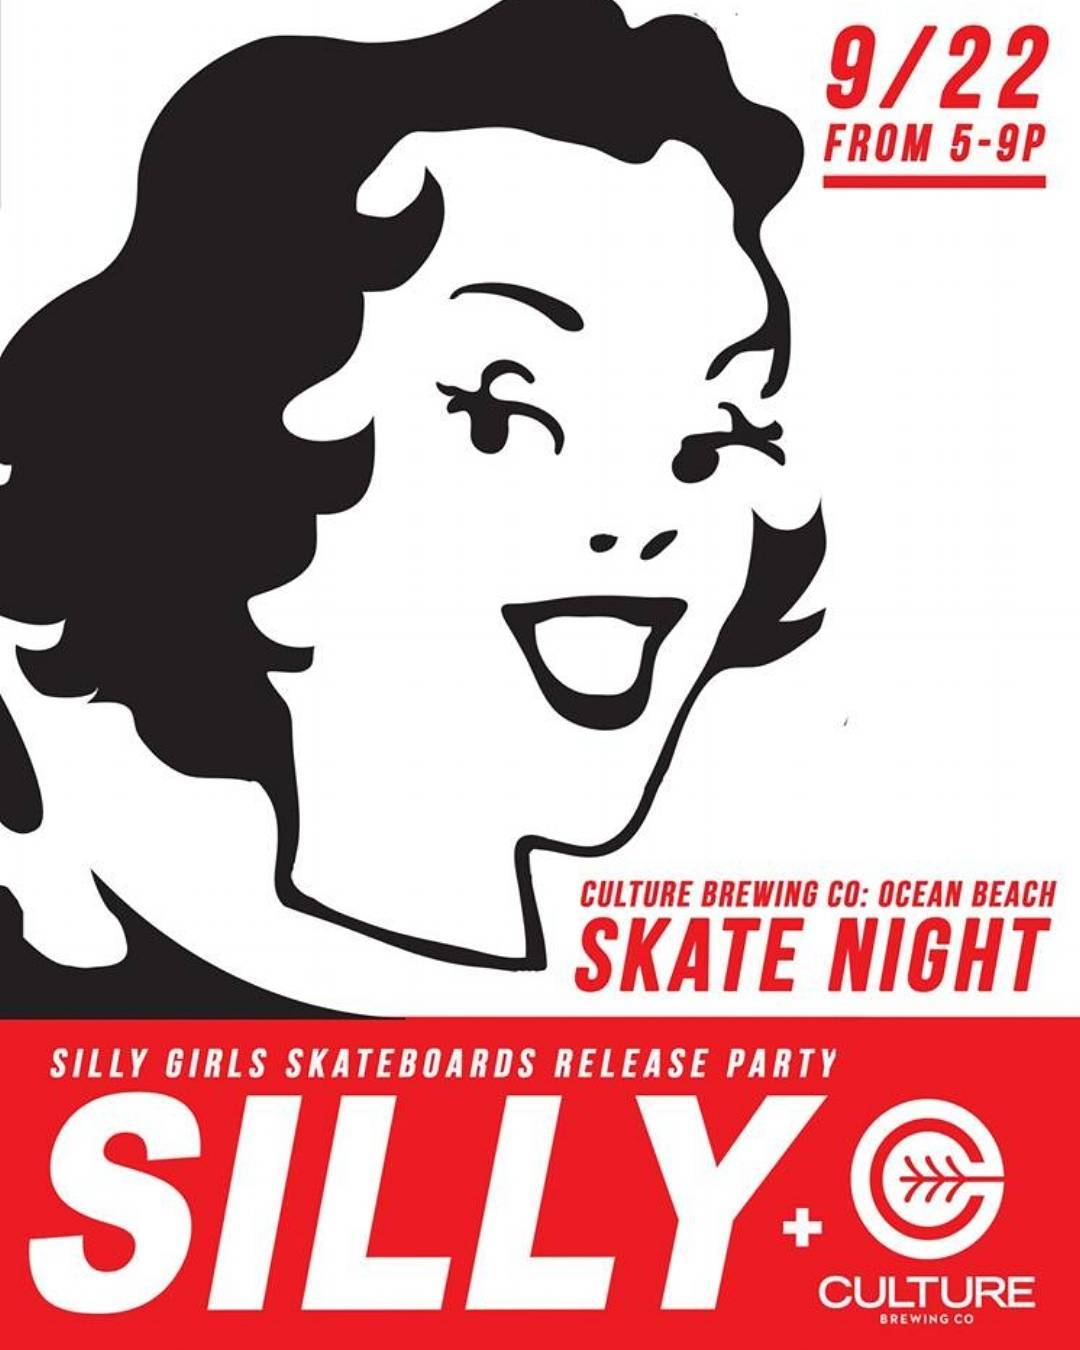 If you're in the area you may want to check this out on Thursday! Repost from @sillygirlskateboards | Skate Night! Come hang out with some of the crew on Thursday Sept. 22nd in Ocean Beach at the Culture Brewing Co - Ocean Beach​ Tasting Room from...